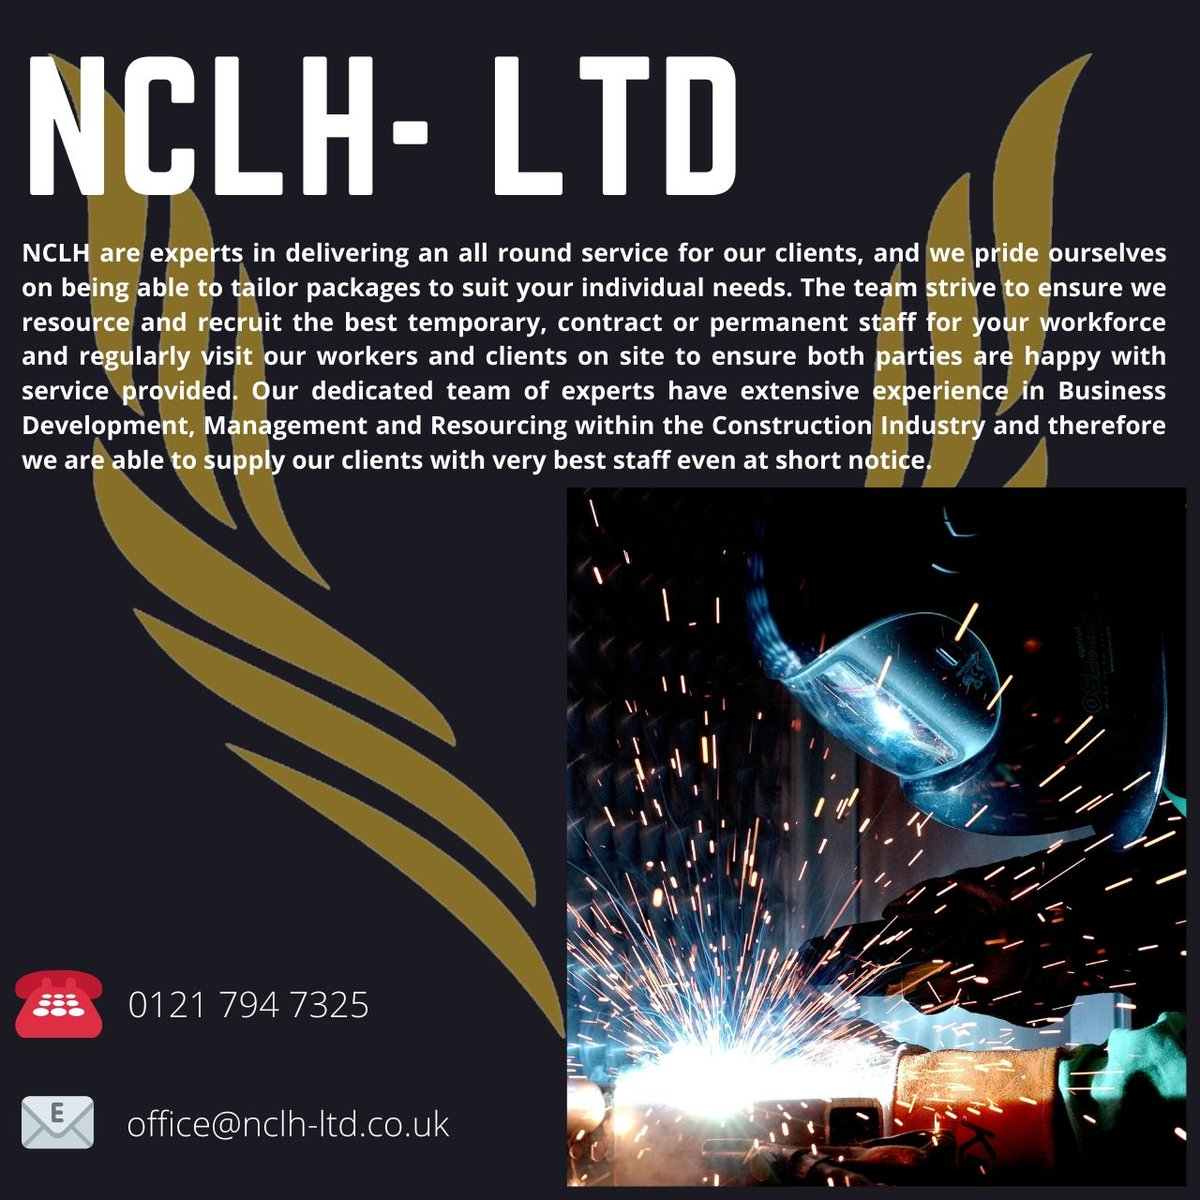 NCLH- LTD specializes in the supply of temporary and contract staff across a variety of industries, get in touch today for more information   #nclhltd #tempstaff #recruitment #constructionrecruitment #sitework #nationwidelabourhire #constructionworker #constructionUK #newjobpic.twitter.com/84o9tJ4hcR